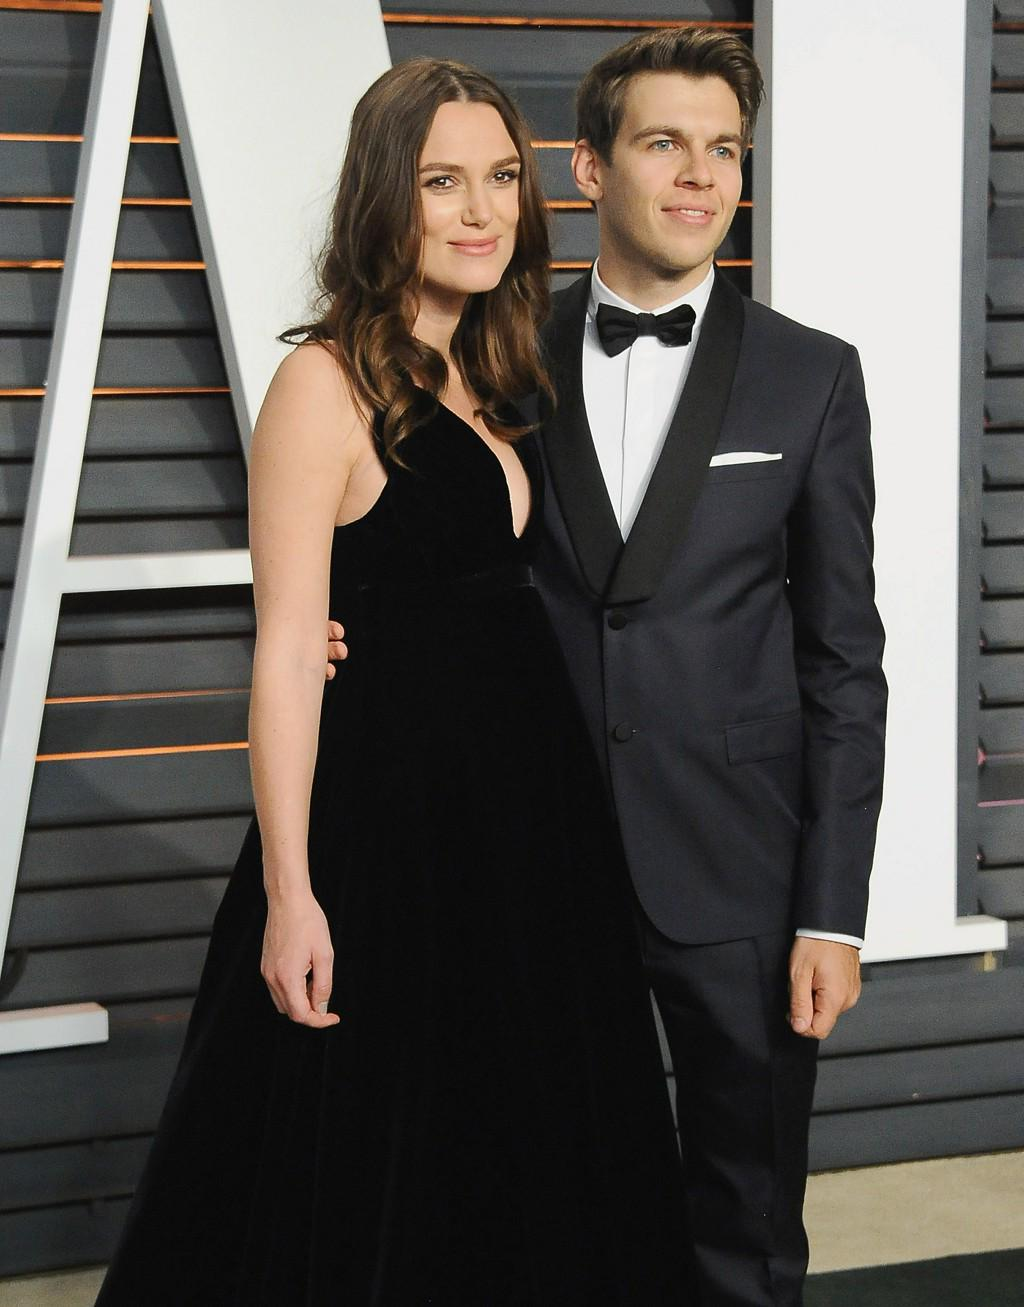 Keira Knightley Has Given Birth! http://t.co/tppXceOHD6 http://t.co/GbJ3Ac53oY